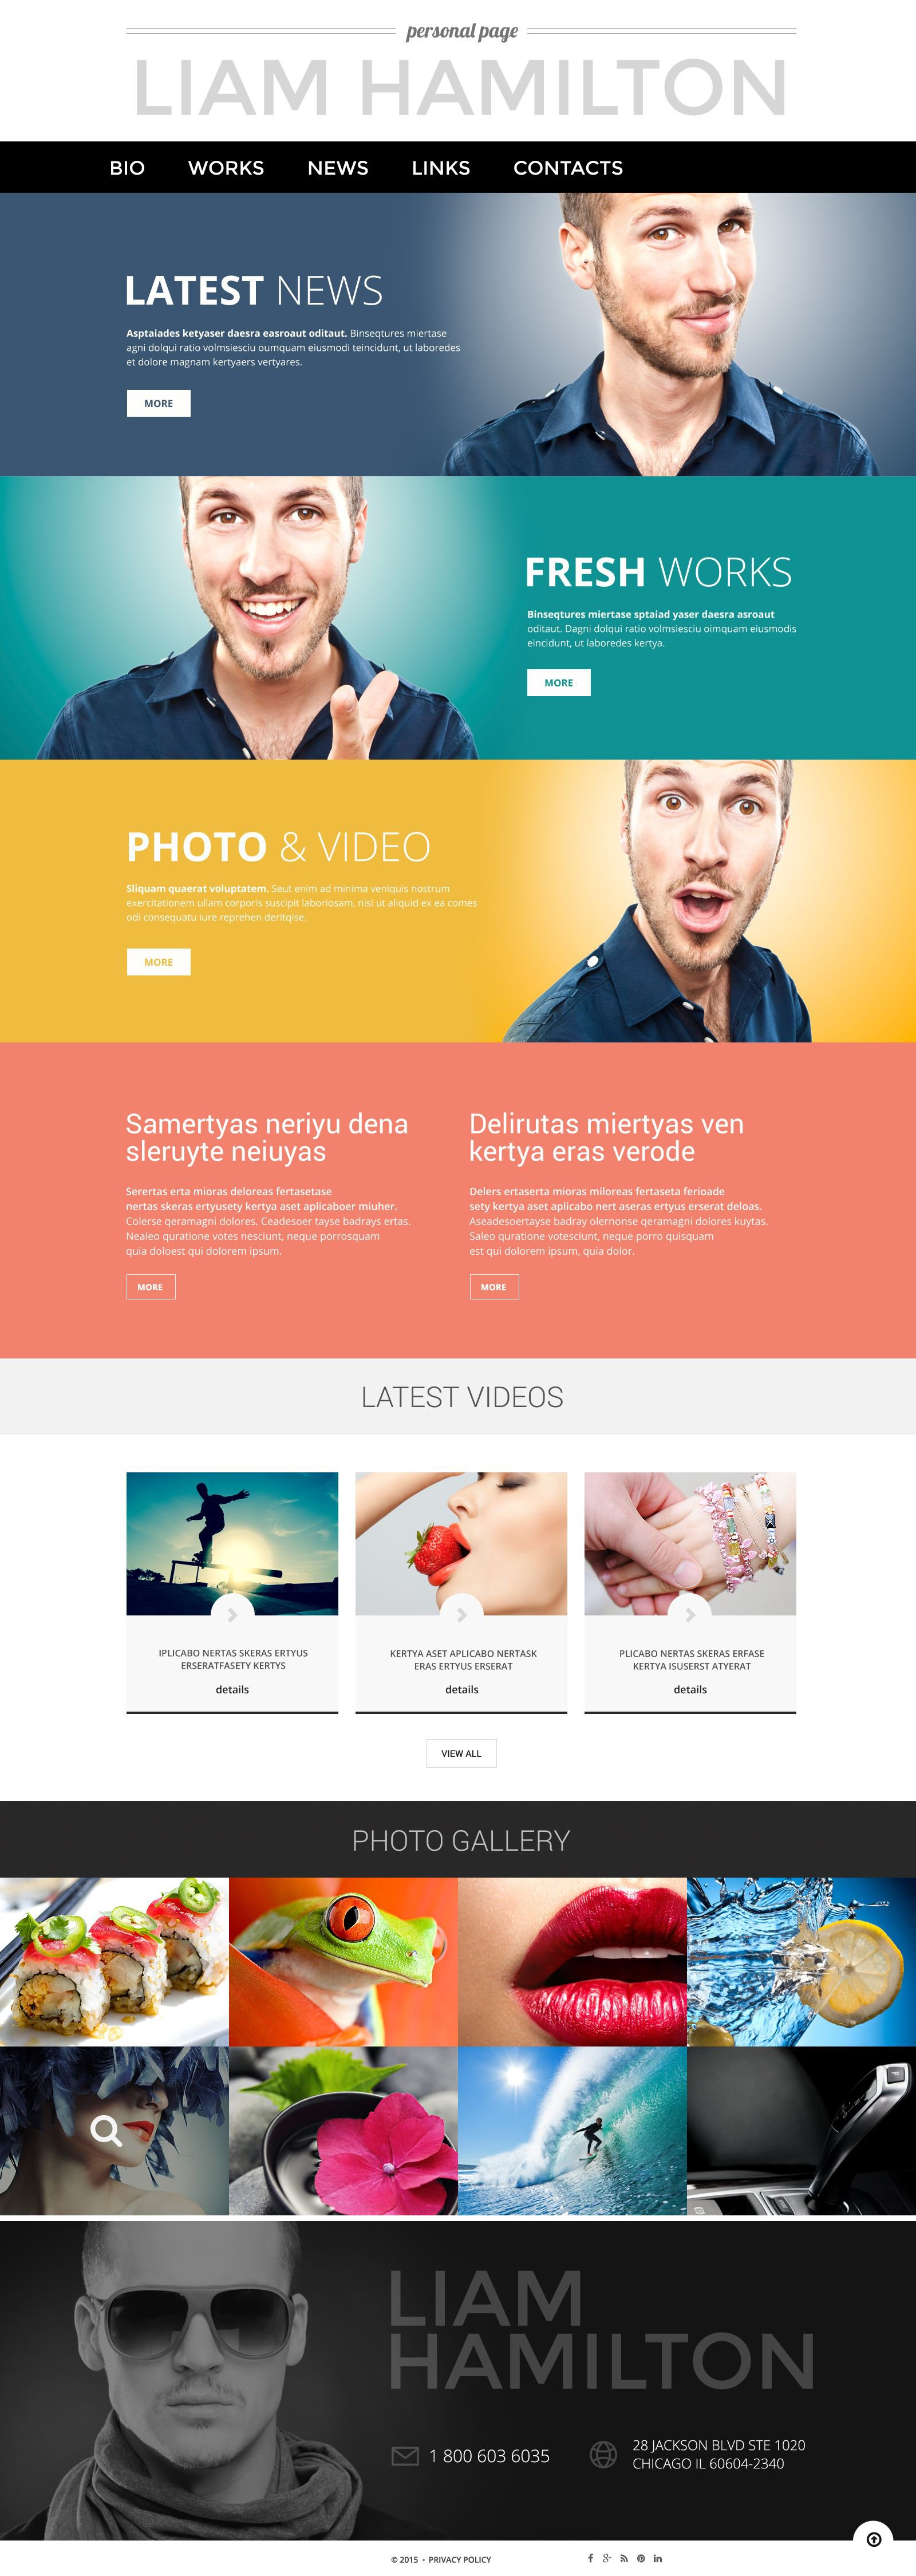 The Liam Hamilton Personal Blog WordPress Design 53390, one of the best WordPress themes of its kind (wedding, most popular), also known as Liam Hamilton personal blog WordPress template, page WordPress template, site WordPress template, webpage WordPress template, individuality WordPress template, gallery WordPress template, pictures WordPress template, images WordPress template, friends WordPress template, biography WordPress template, interests WordPress template, hobby WordPress template, events career WordPress template, photos WordPress template, personal information WordPress template, music WordPress template, collection WordPress template, aims and related with Liam Hamilton personal blog, page, site, webpage, individuality, gallery, pictures, images, friends, biography, interests, hobby, events career, photos, personal information, music, collection, aims, etc.